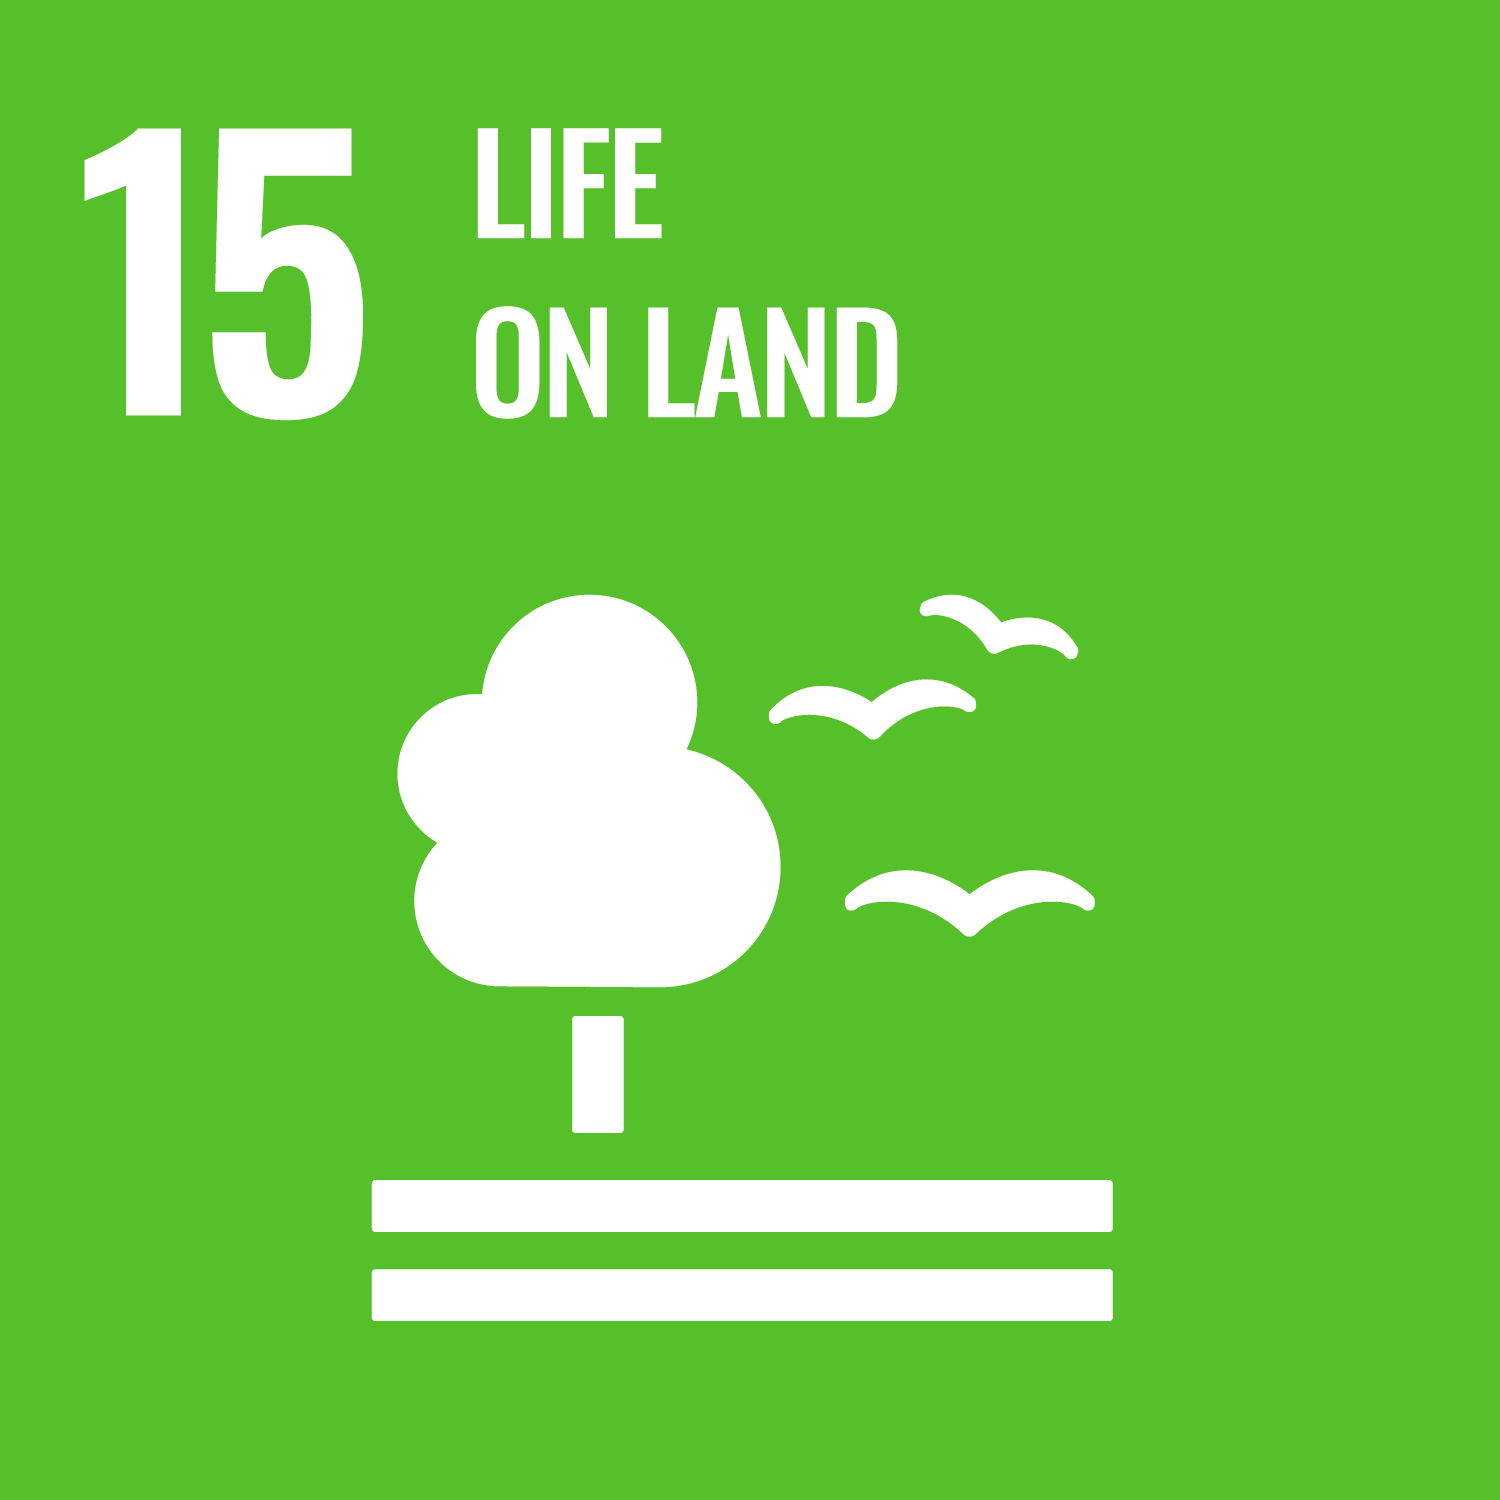 Sustainable Development Goal 15. Sustainably manage forests, combat desertification, halt and reverse land degradation, halt biodiversity loss.